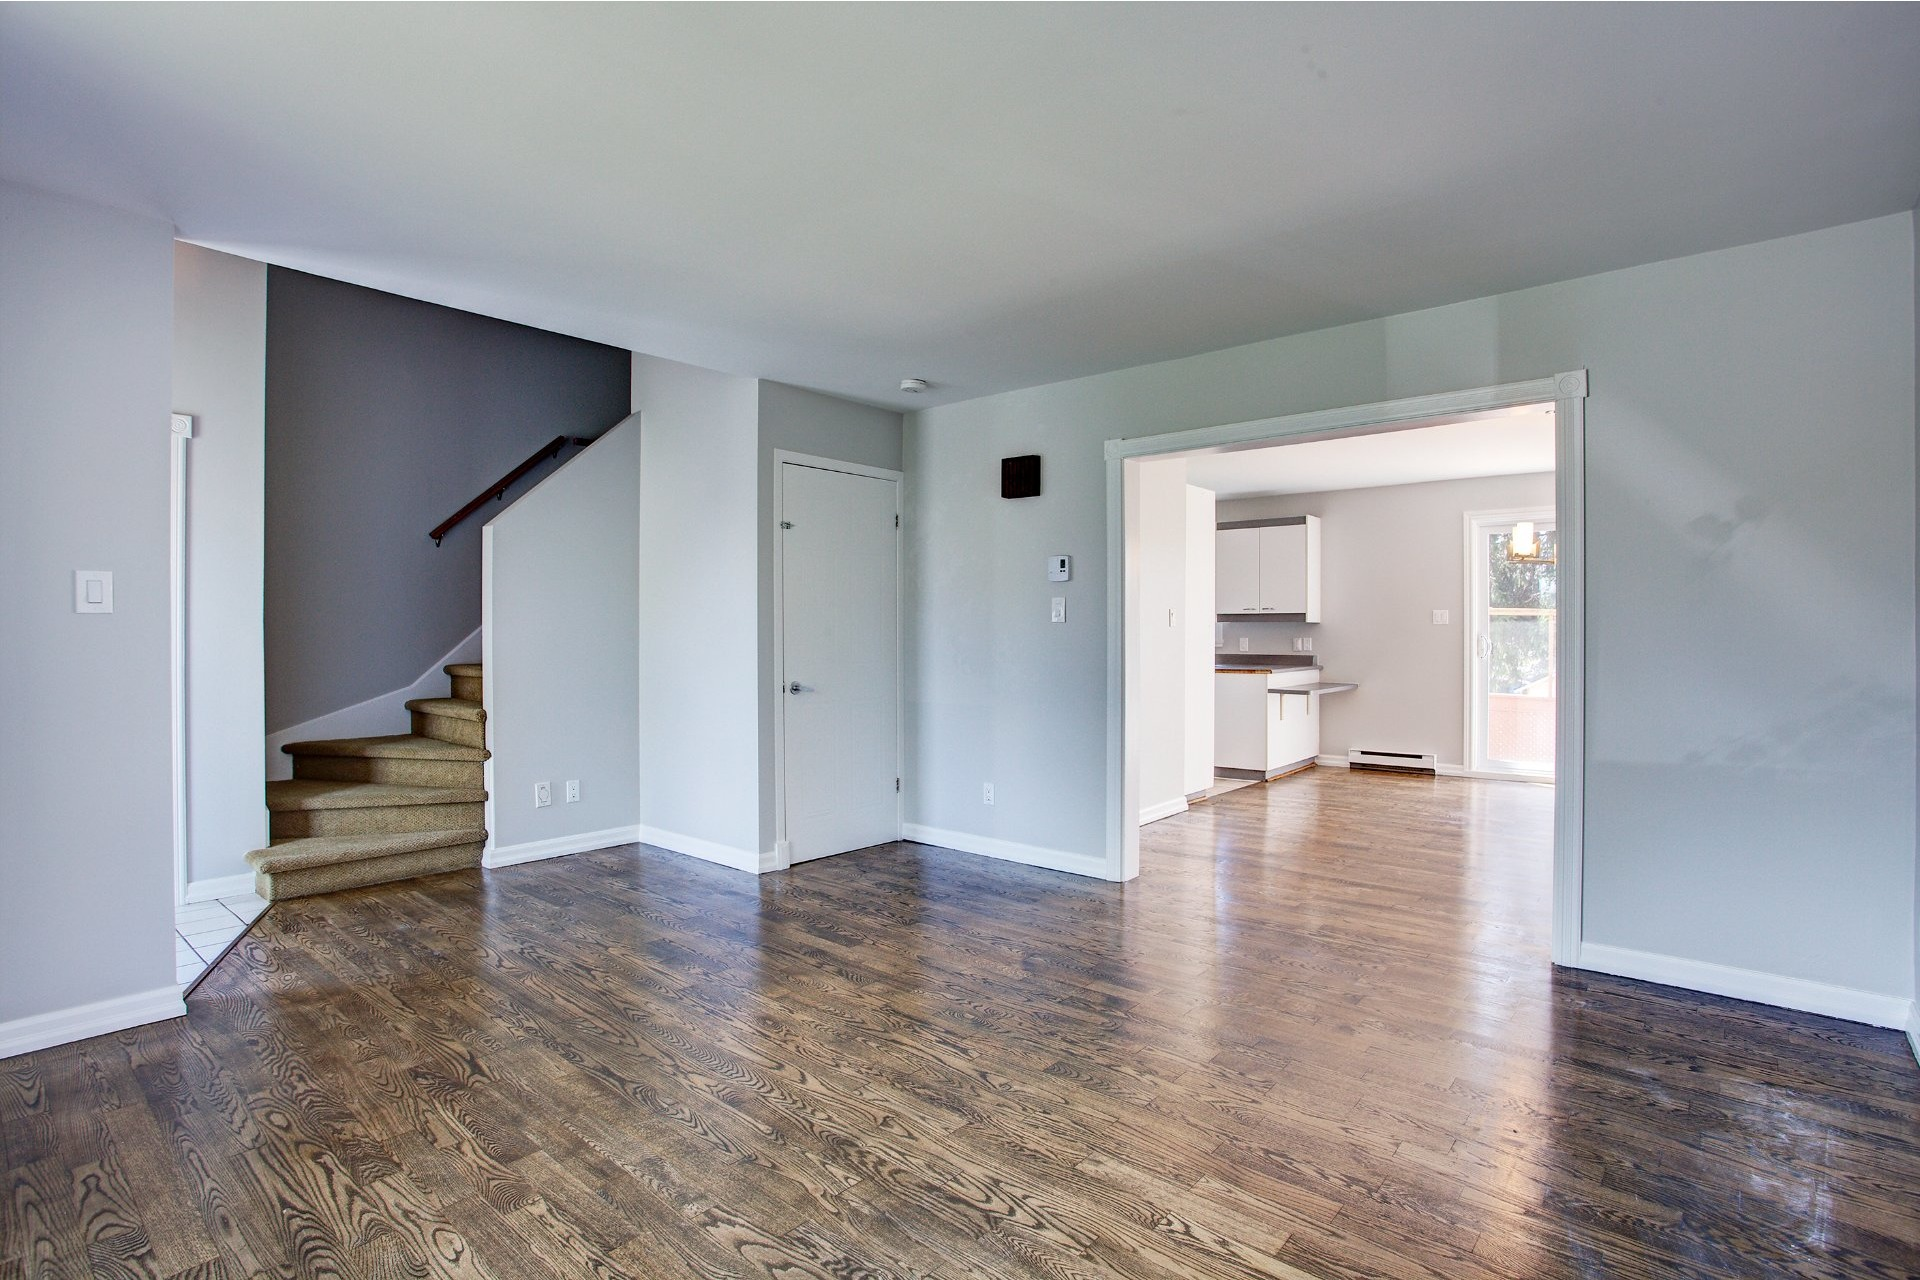 image 6 - House For sale Vaudreuil-Dorion - 10 rooms